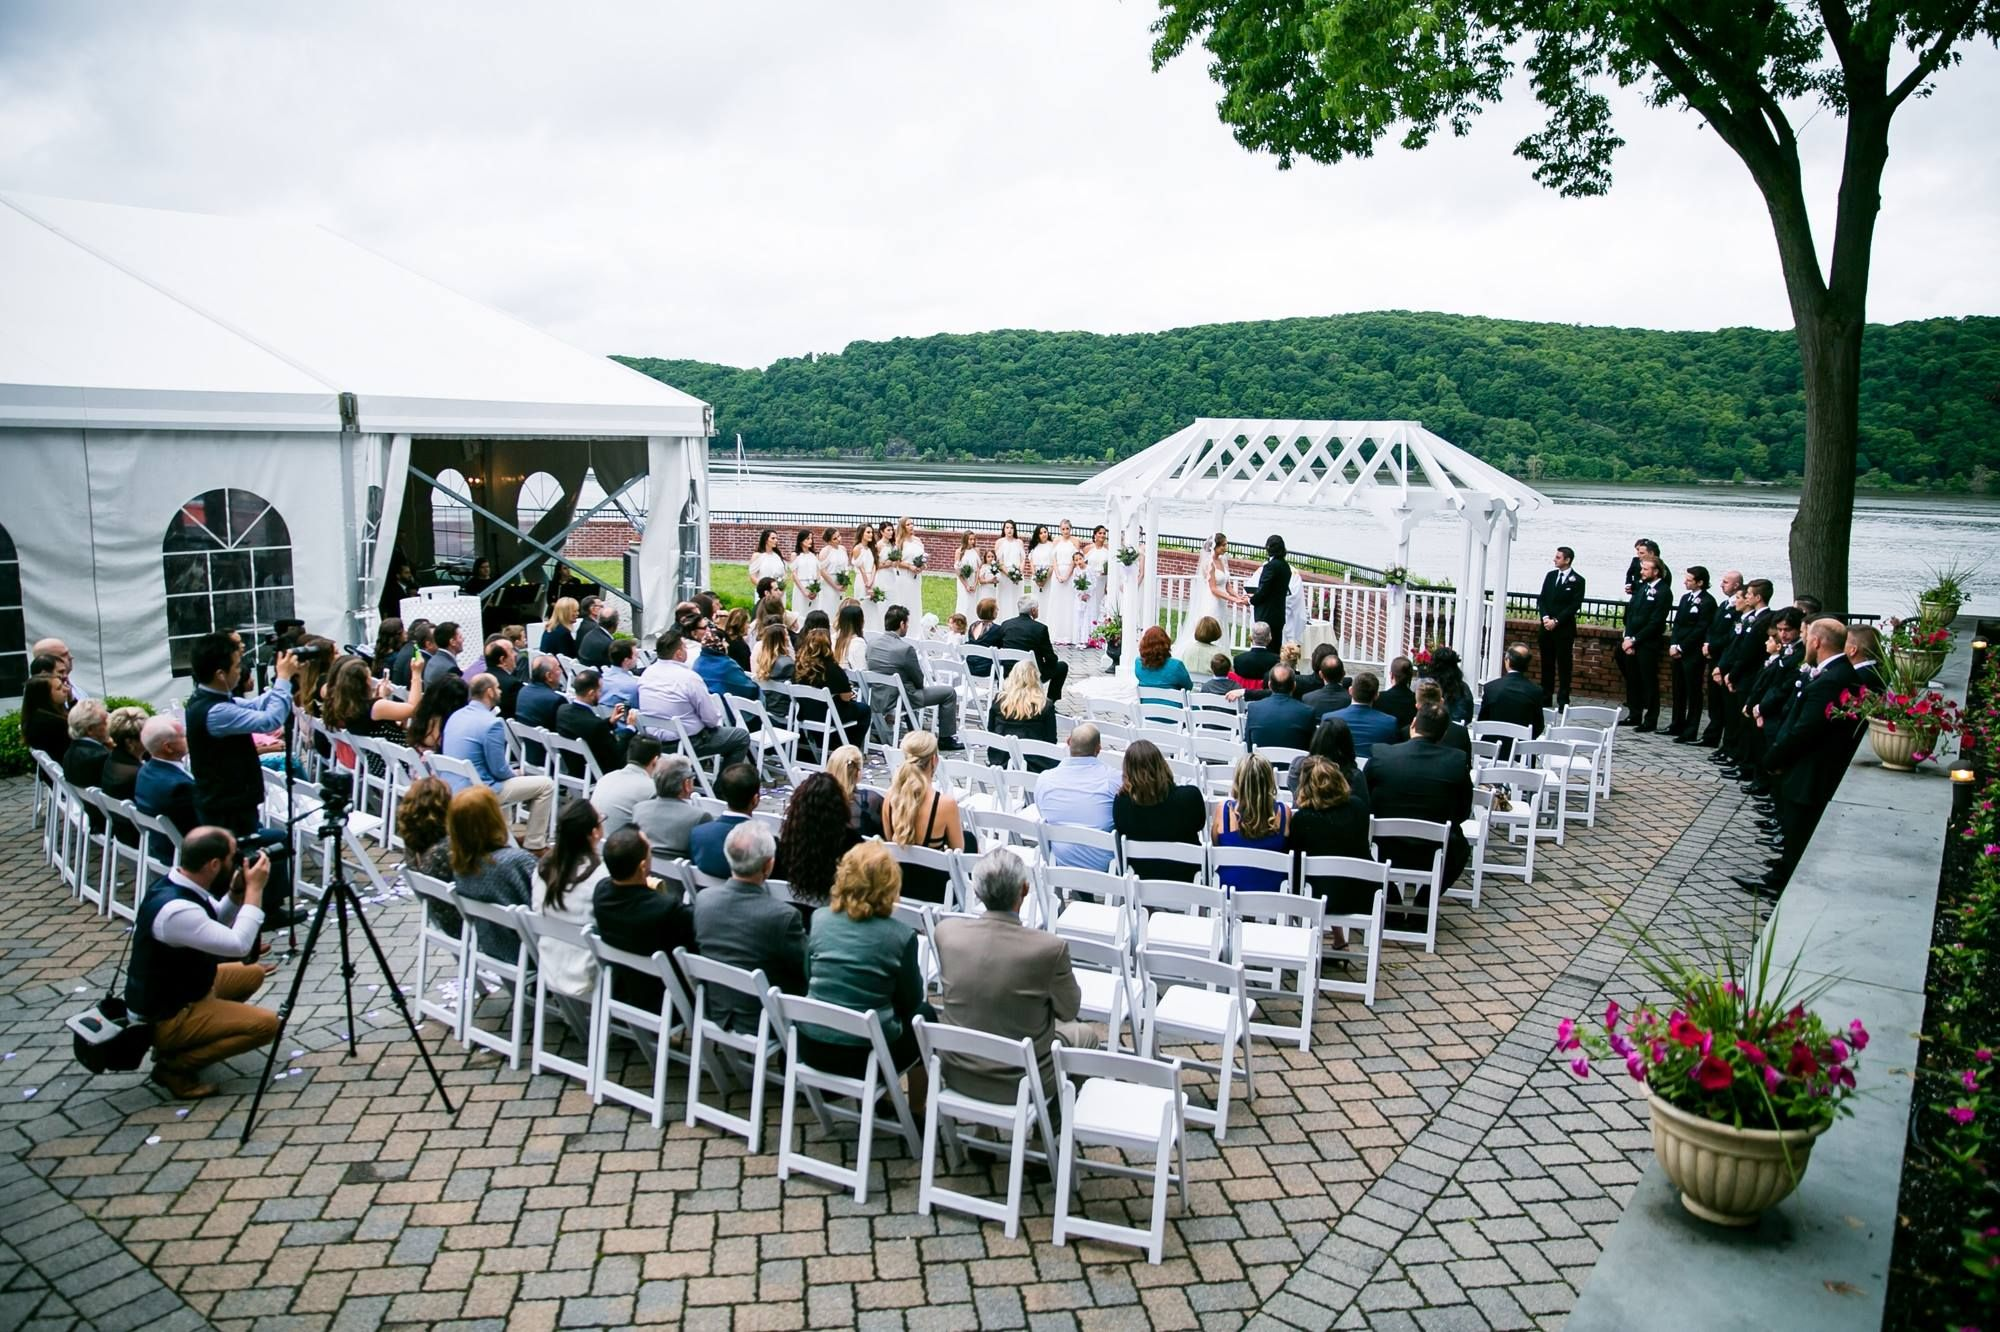 Spring Outdoor Ceremony Site With The Hudson River